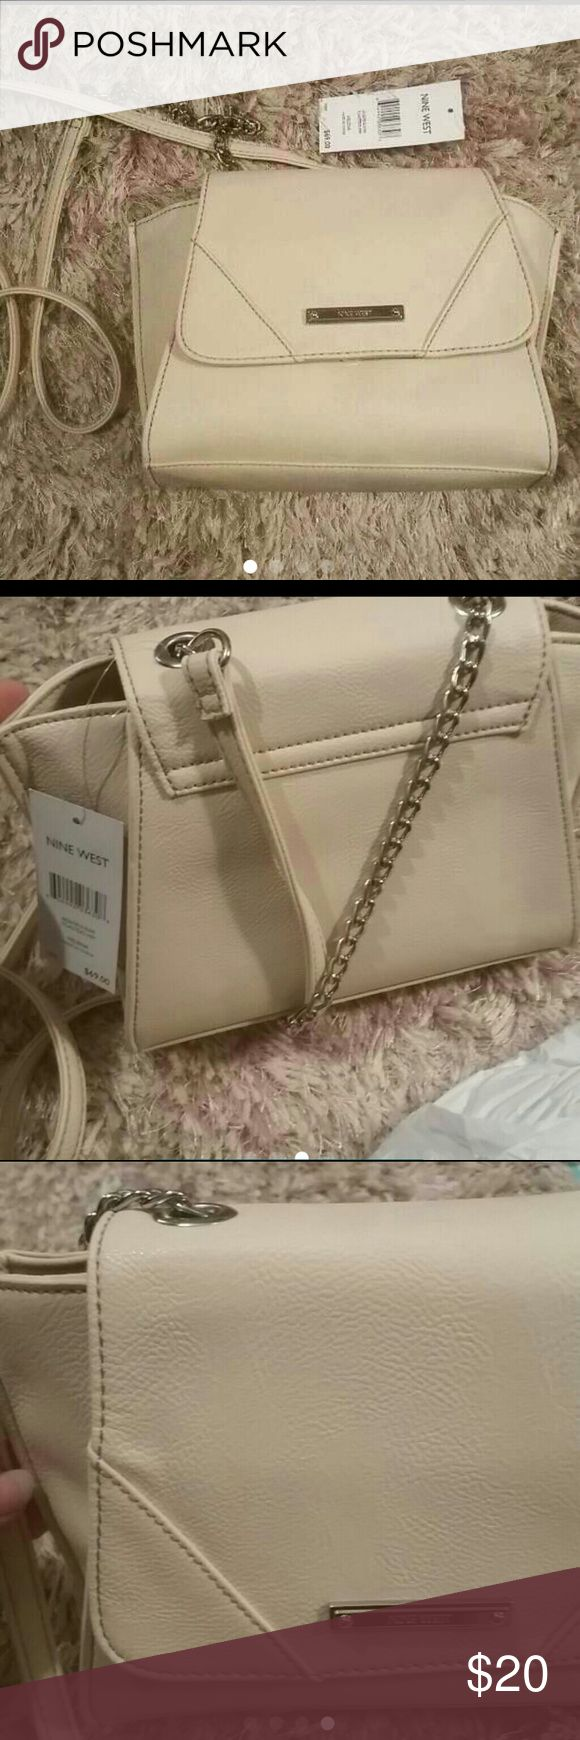 Nine west purse Simple, classic tan purse by Nine west. Msrp is $69. New with tags Nine West Bags Crossbody Bags